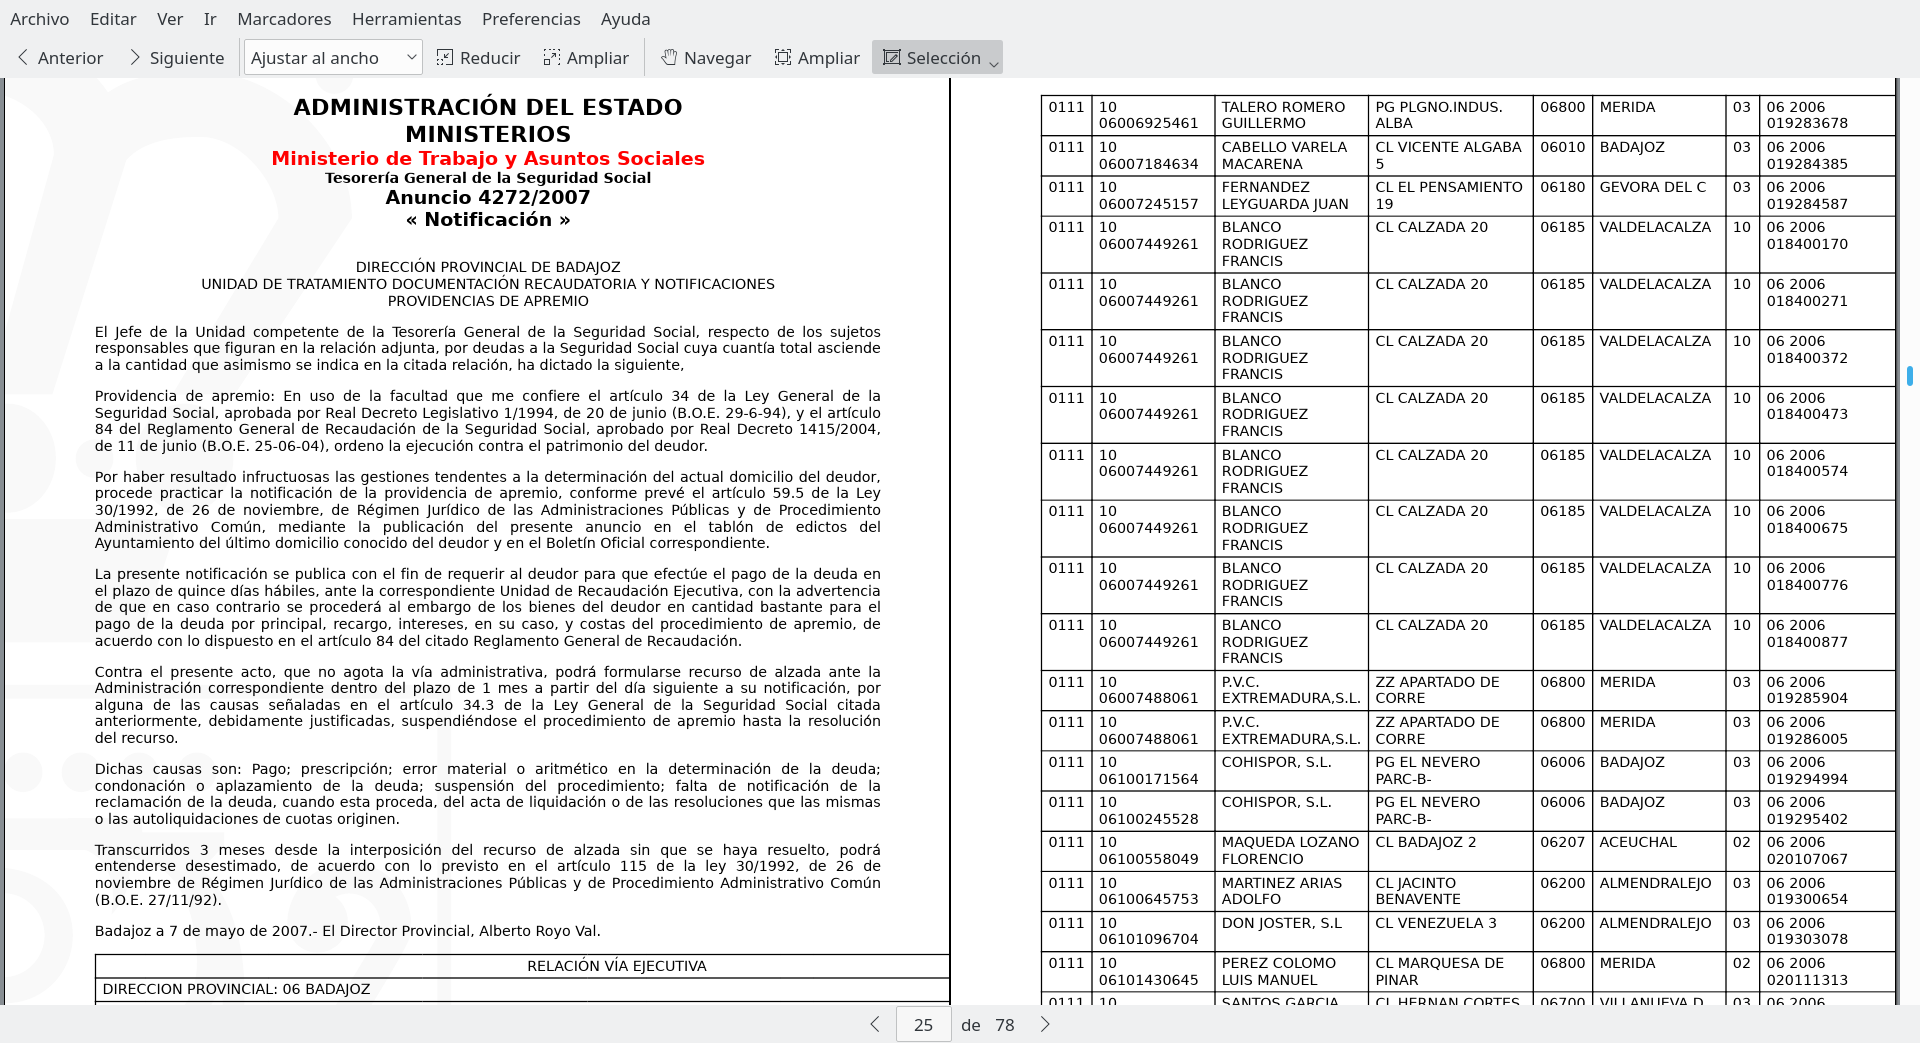 screenshot_viewing_pdf_generated_from_weasyprint